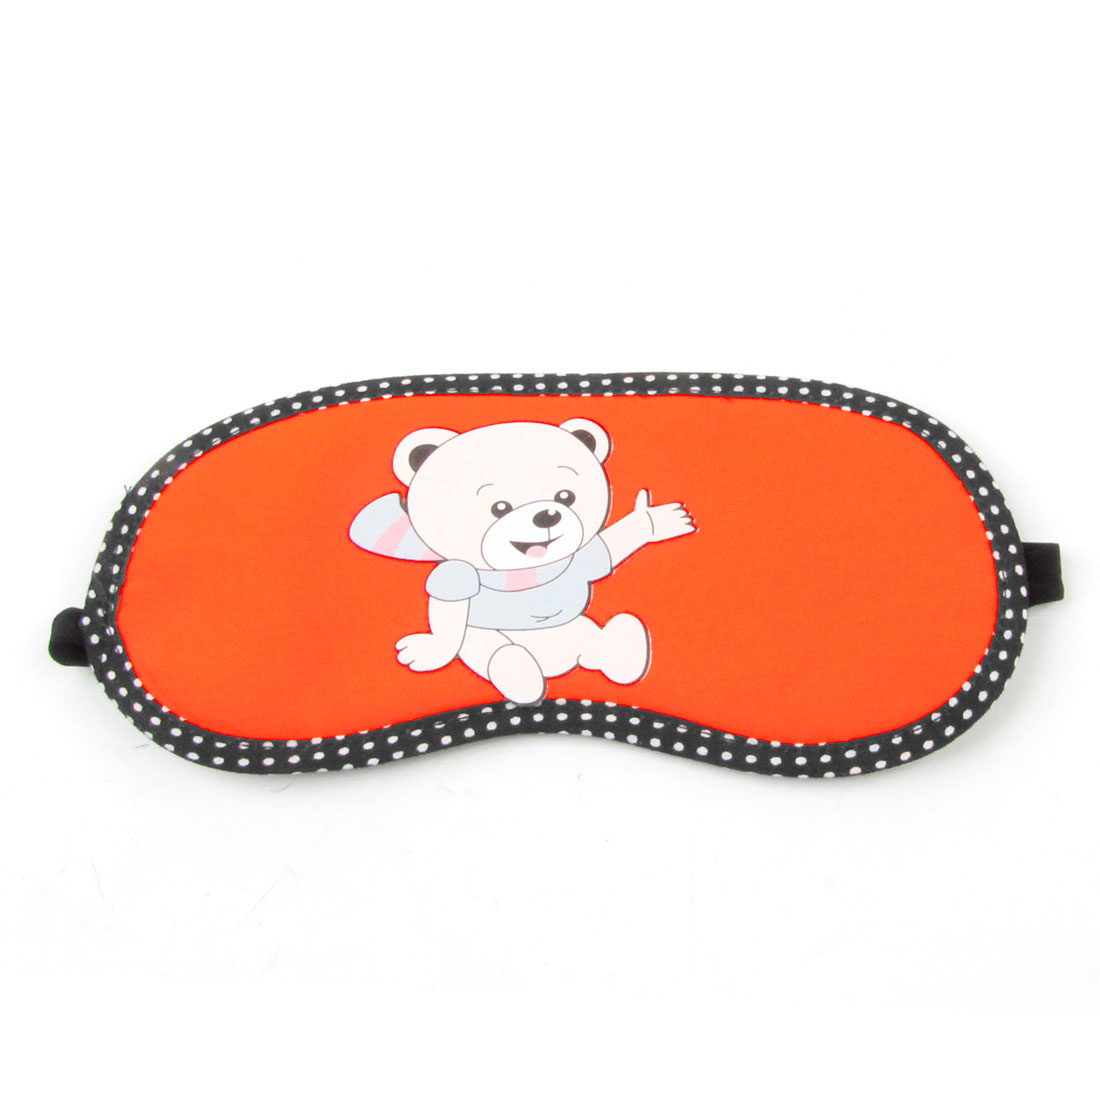 Orange Nylon Sponge Cartoon Bear Printed Eye Mask Eyeshade Cover Sleep Blinder